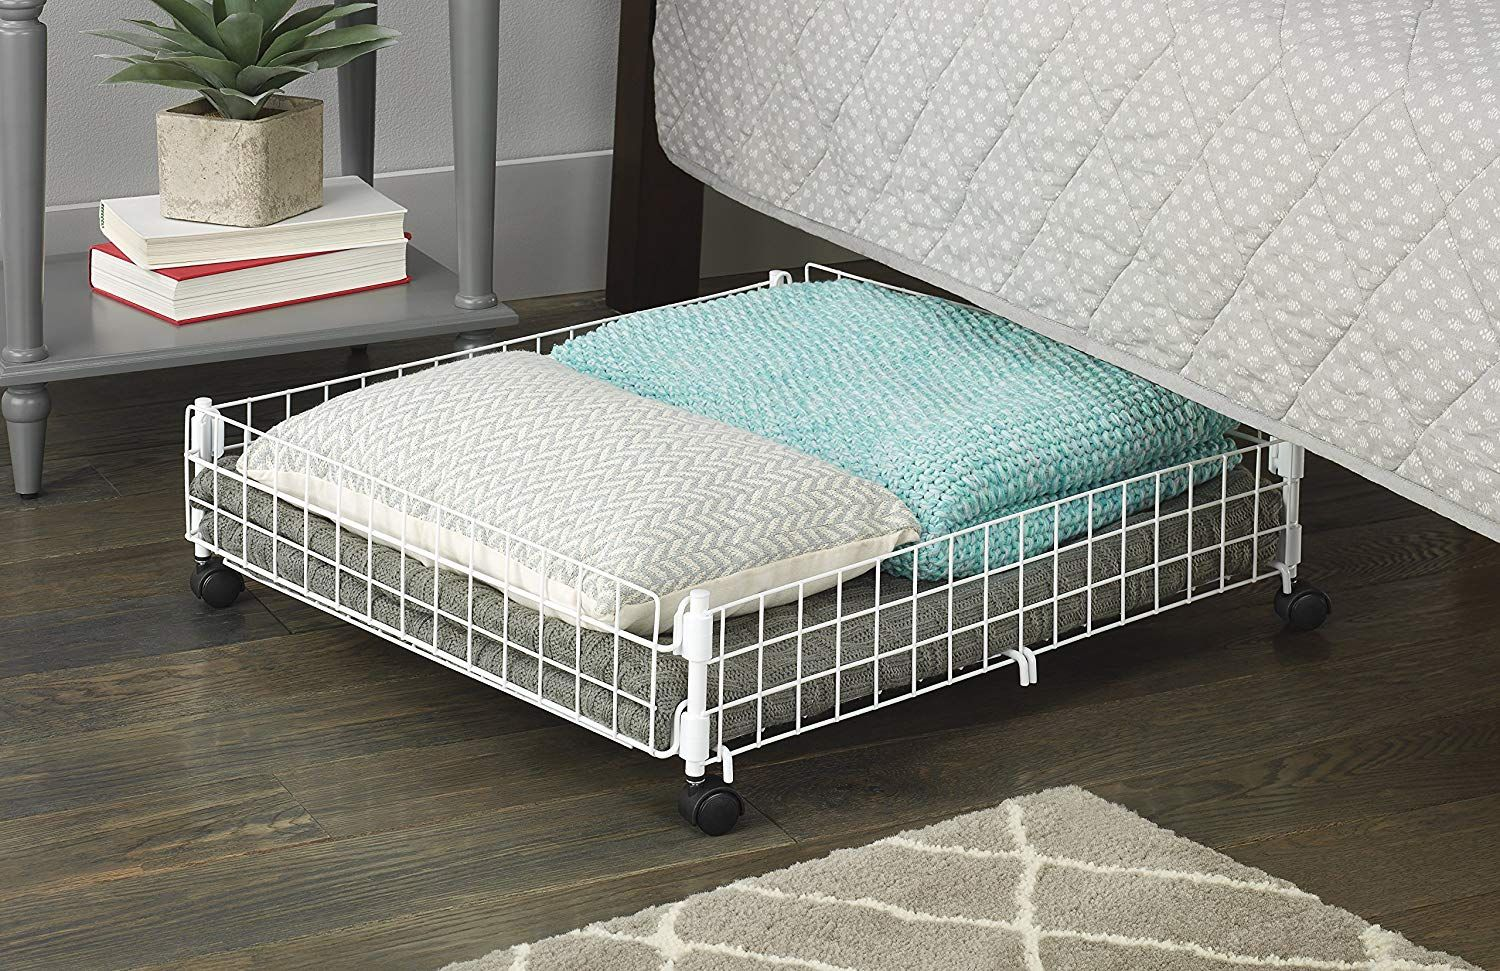 This Rolling Underbed Storage Cart Is the One Thing You Need to Organize Your Dorm Room